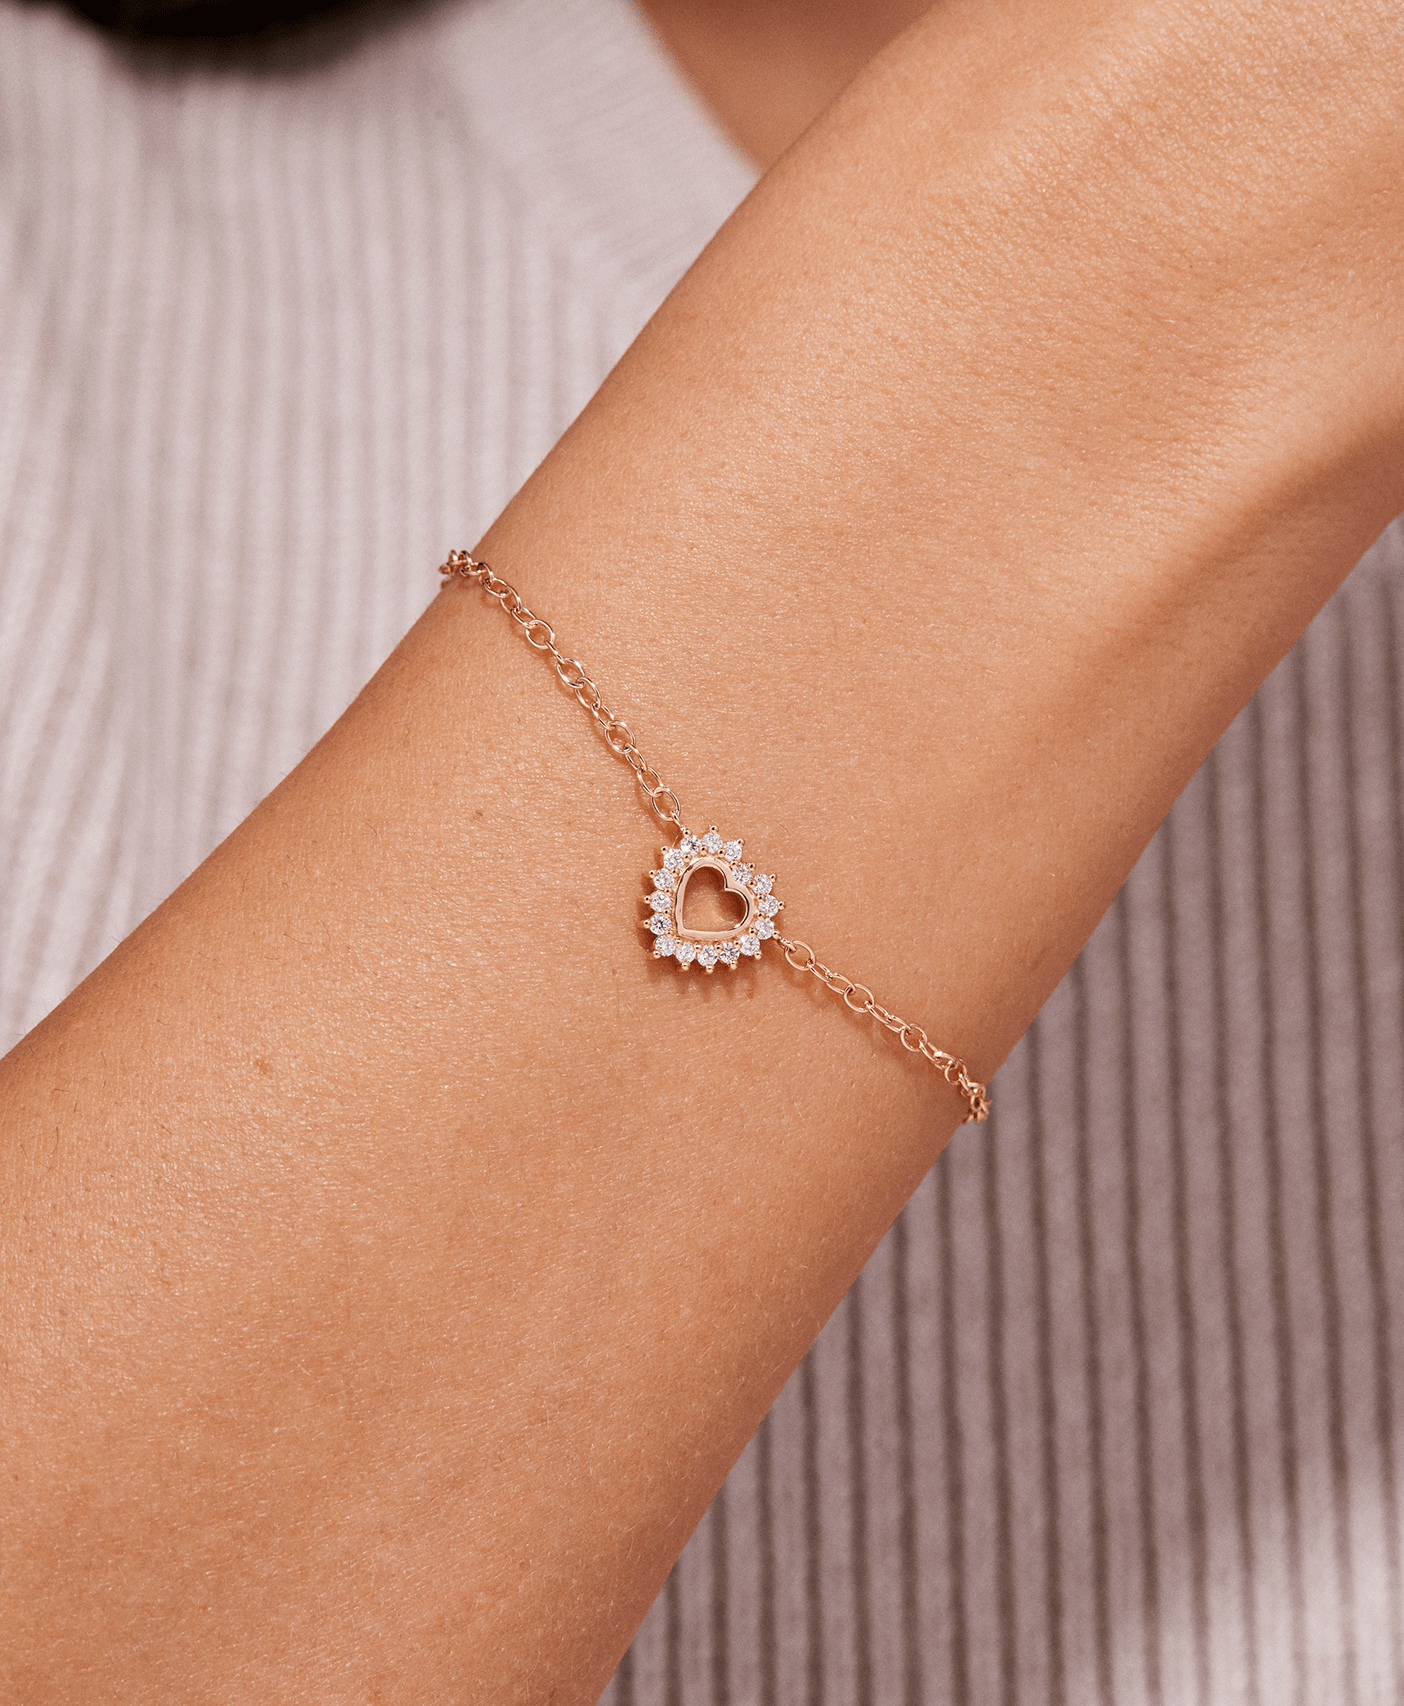 Medium Love Bracelet: Discover Luxury Fine Jewelry | Nouvel Heritage